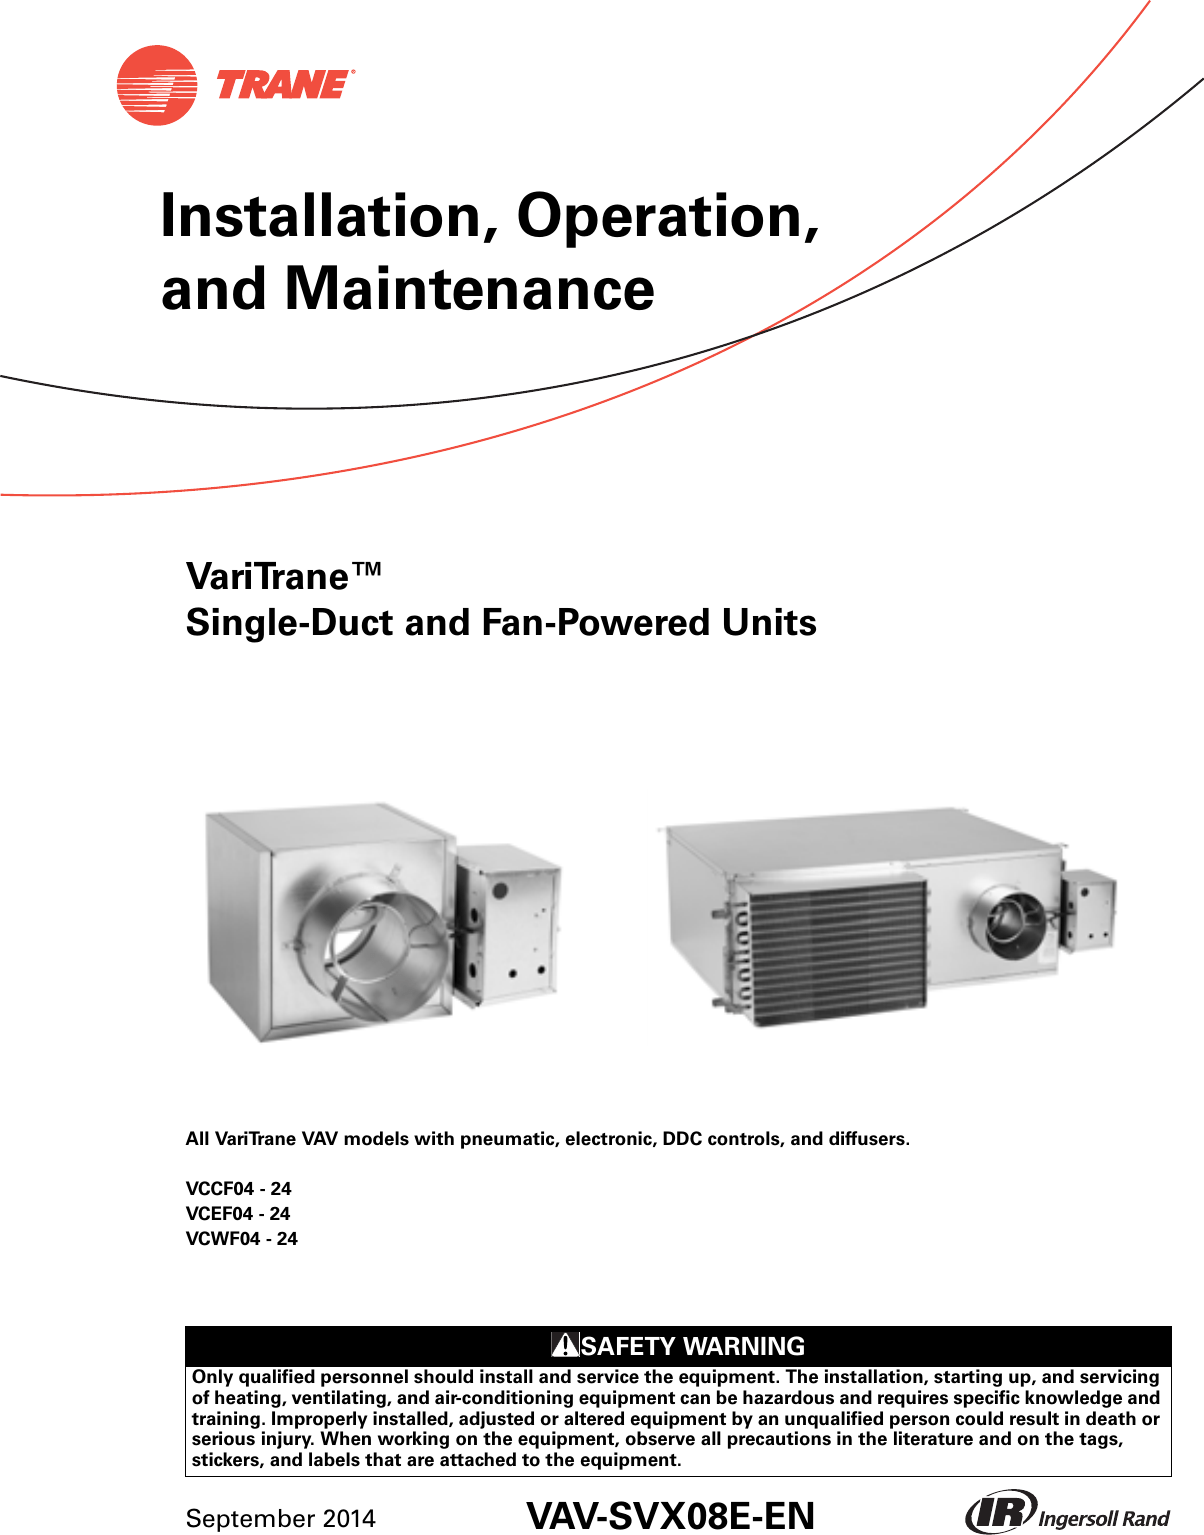 hight resolution of trane round in out installation and maintenance manual vav svx01e en 09 2014